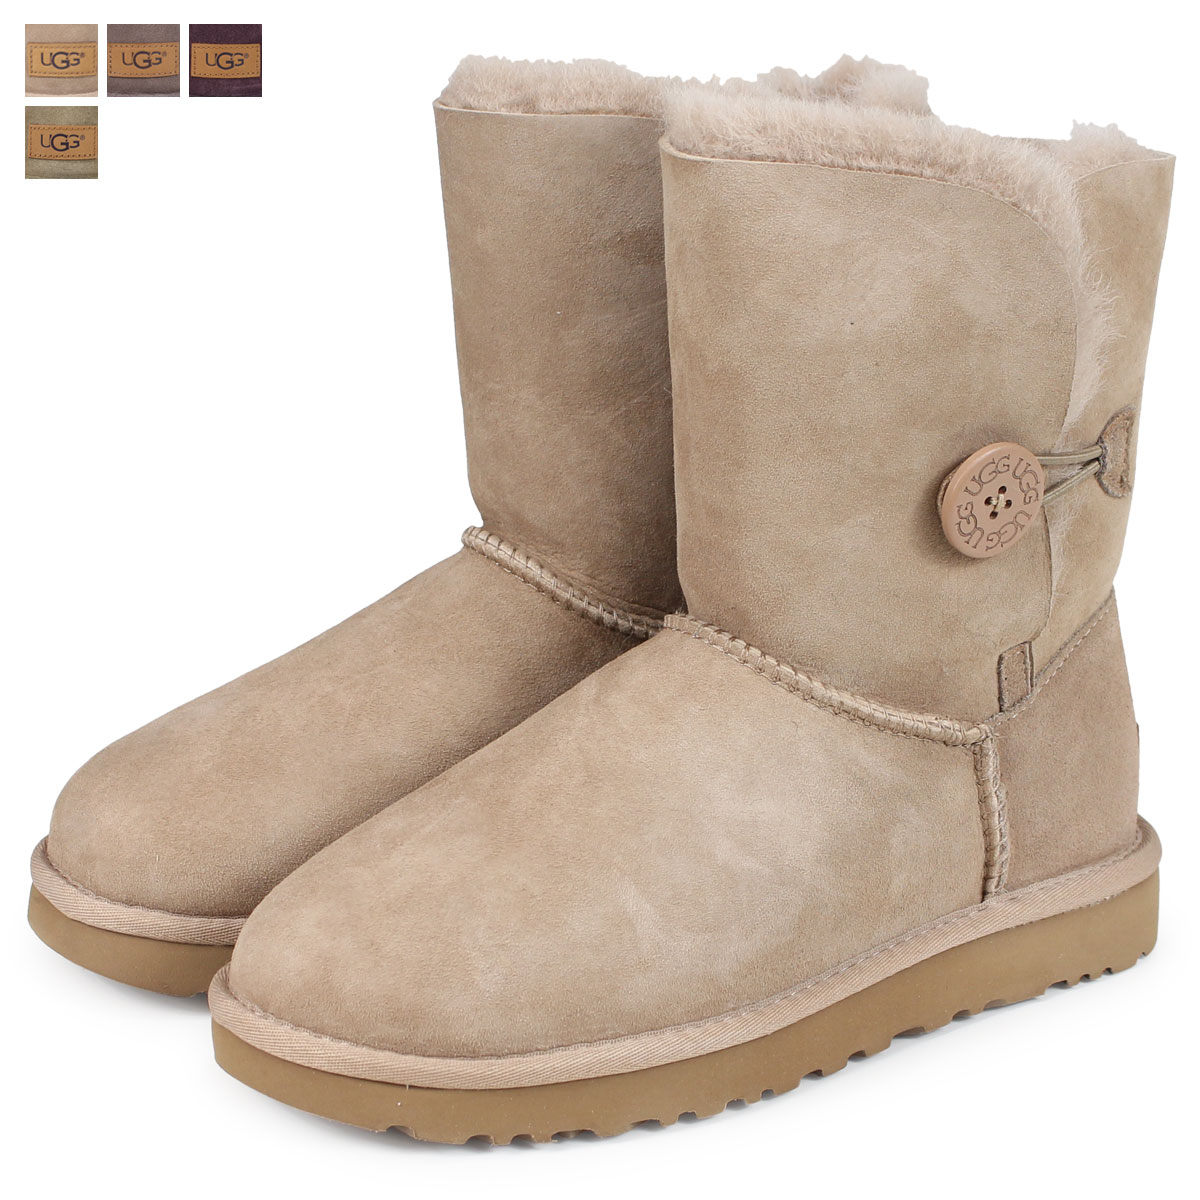 dcc350a7285 UGG WOMENS BAILEY BUTTON II アグムートンブーツベイリーボタン 2 Lady's 1016226 [load planned  Shinnyu load in reservation product 11/1 ...